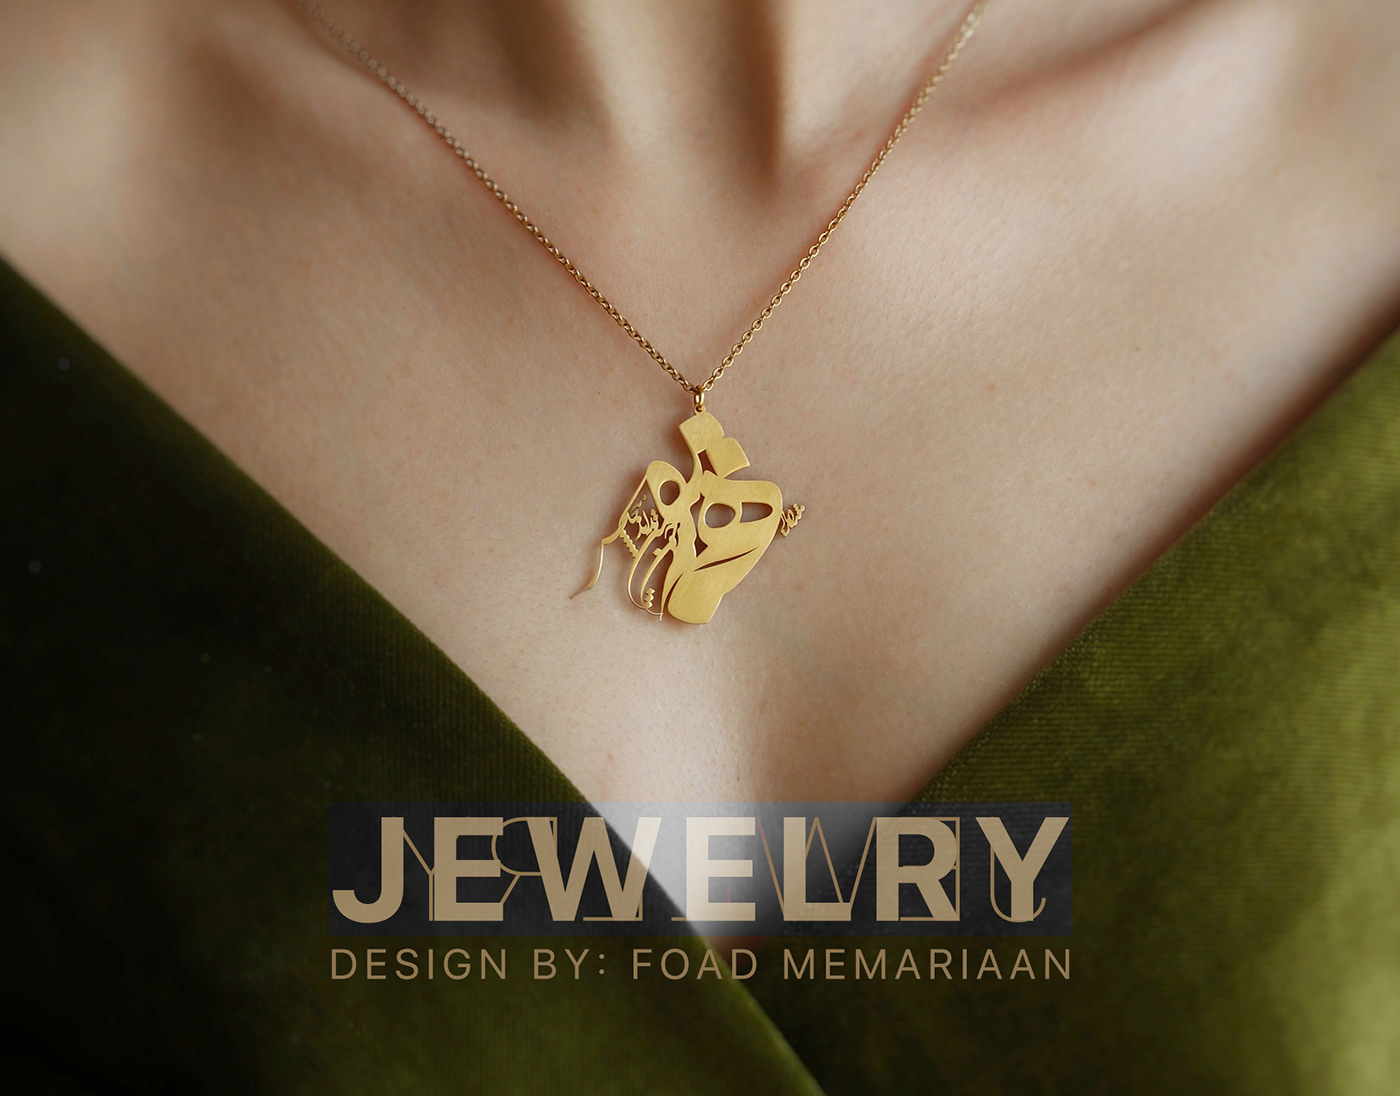 arabic calligraphy arabic design Calligraphy jewelry calligraphy necklace jewelry memariaan Necklace necklace design persian